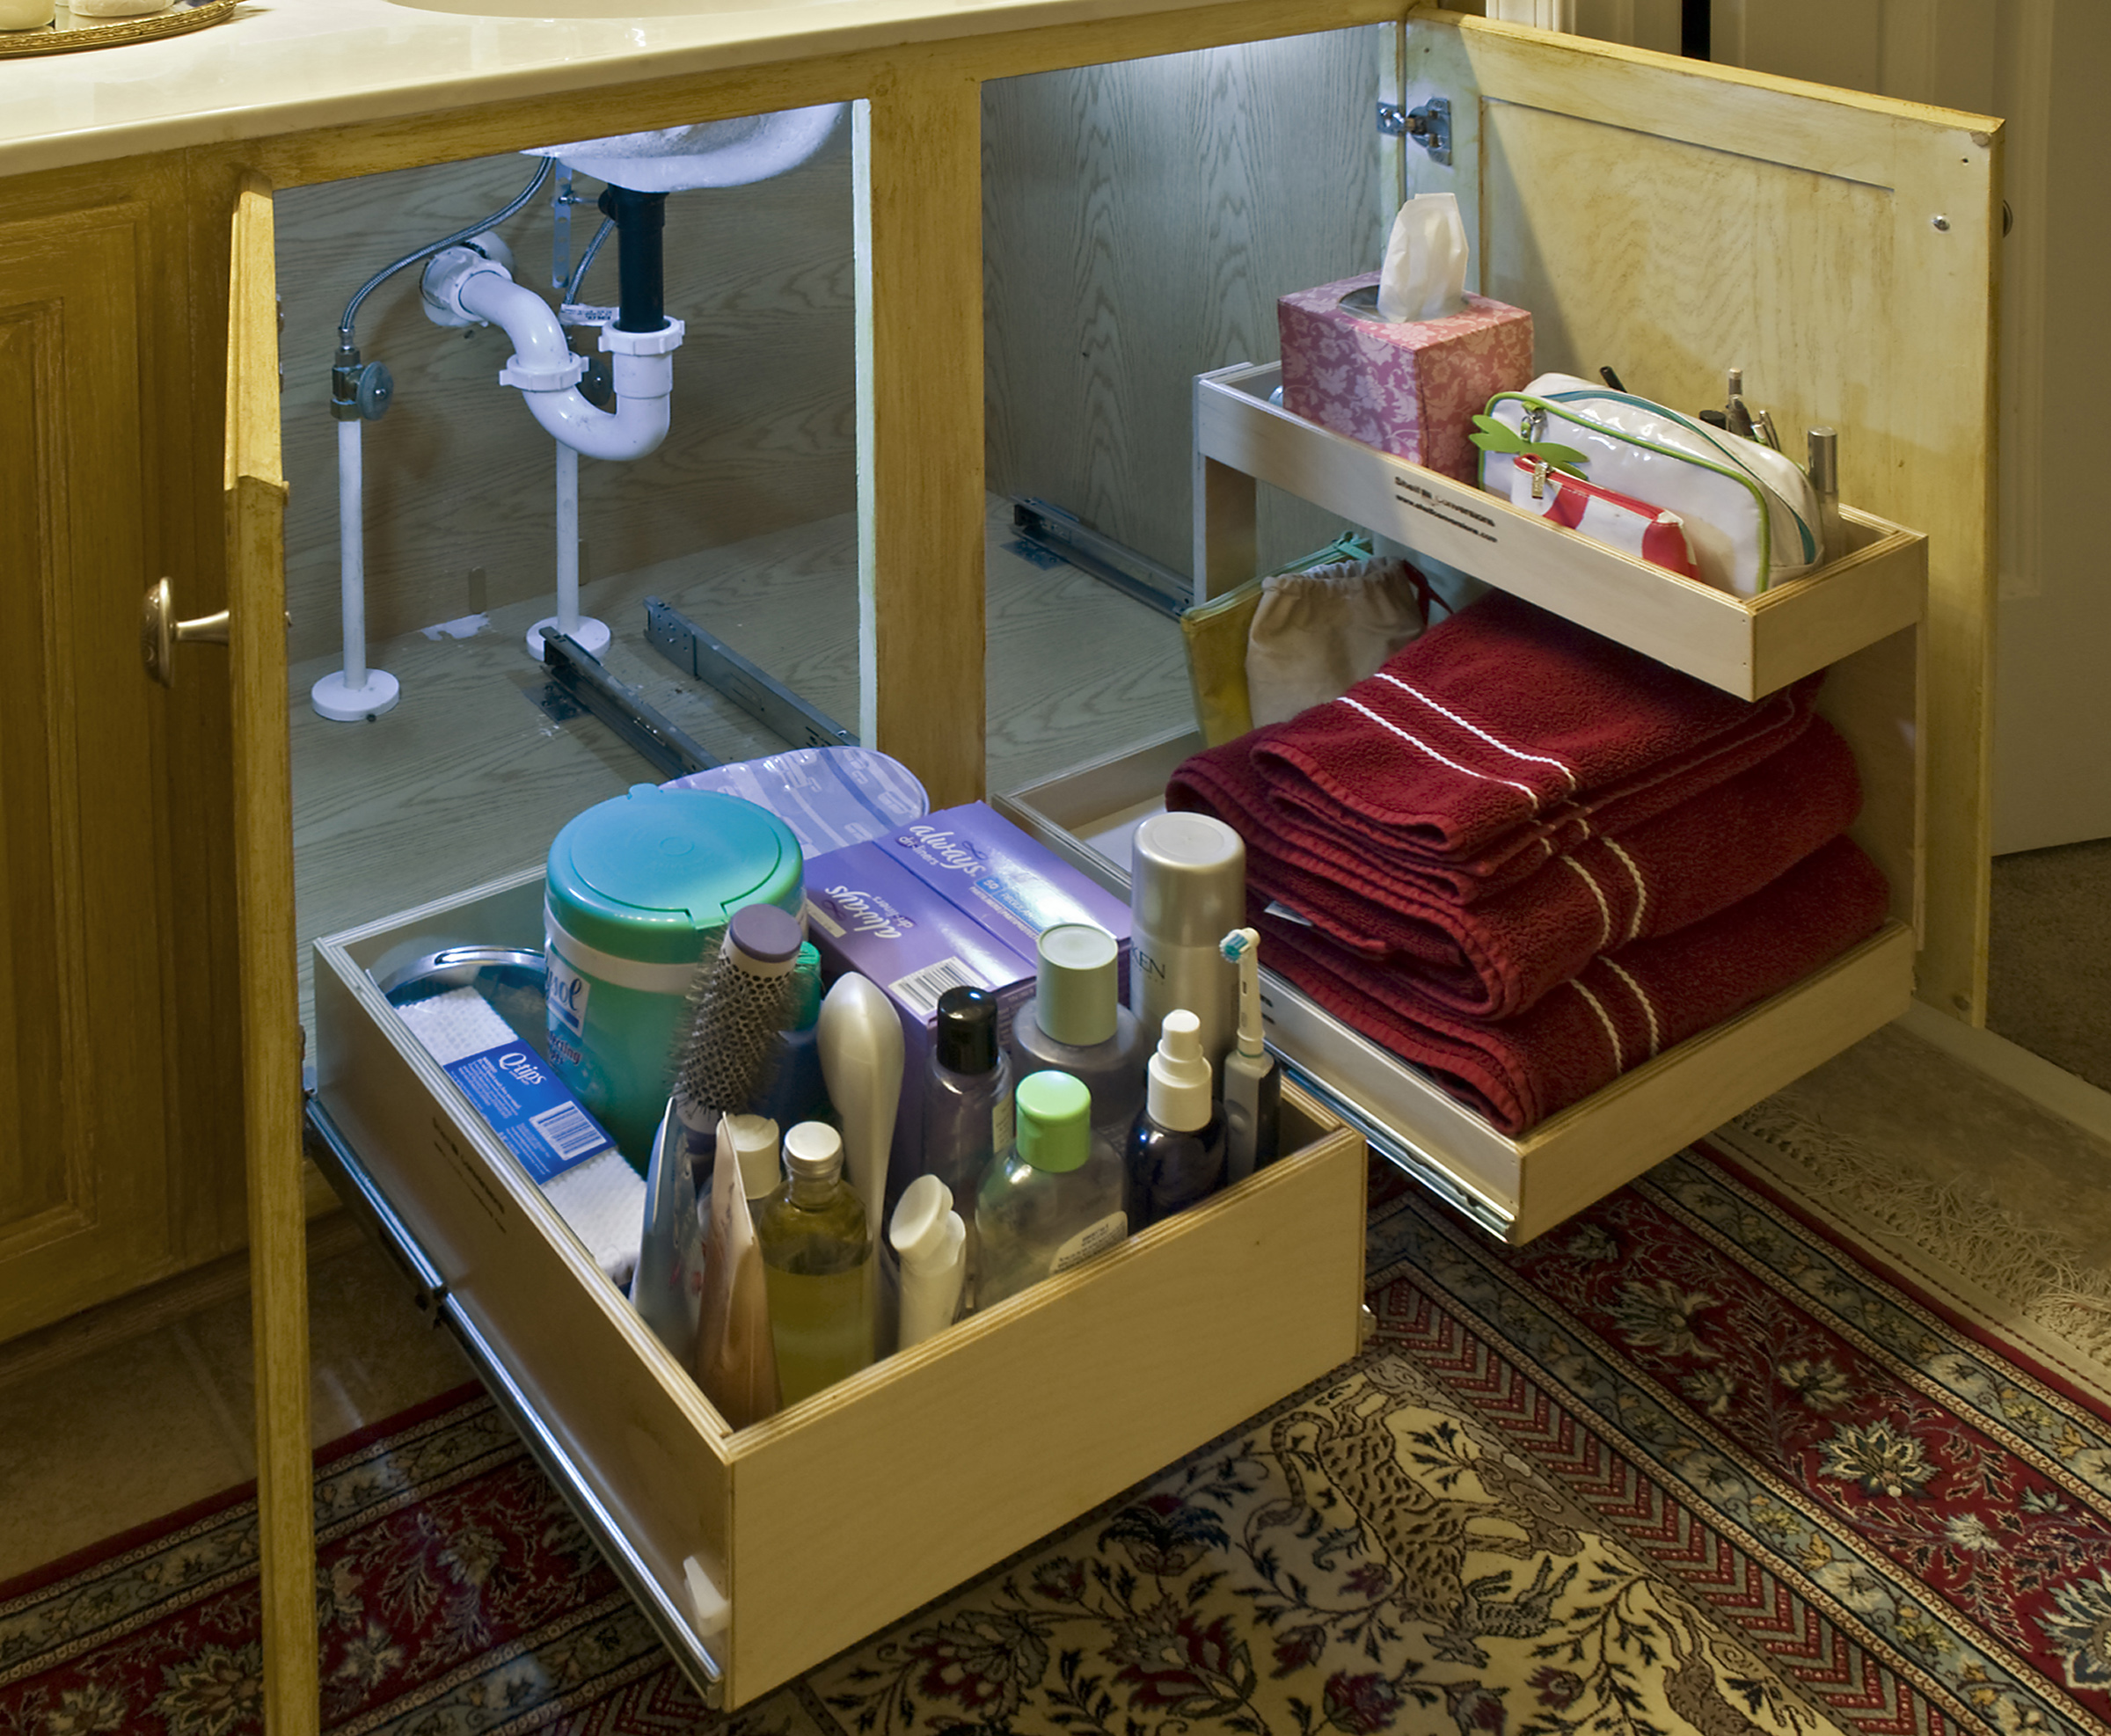 under sink kitchen cabinet sink kitchen cabinets Under Kitchen Sink Cabinet Liner